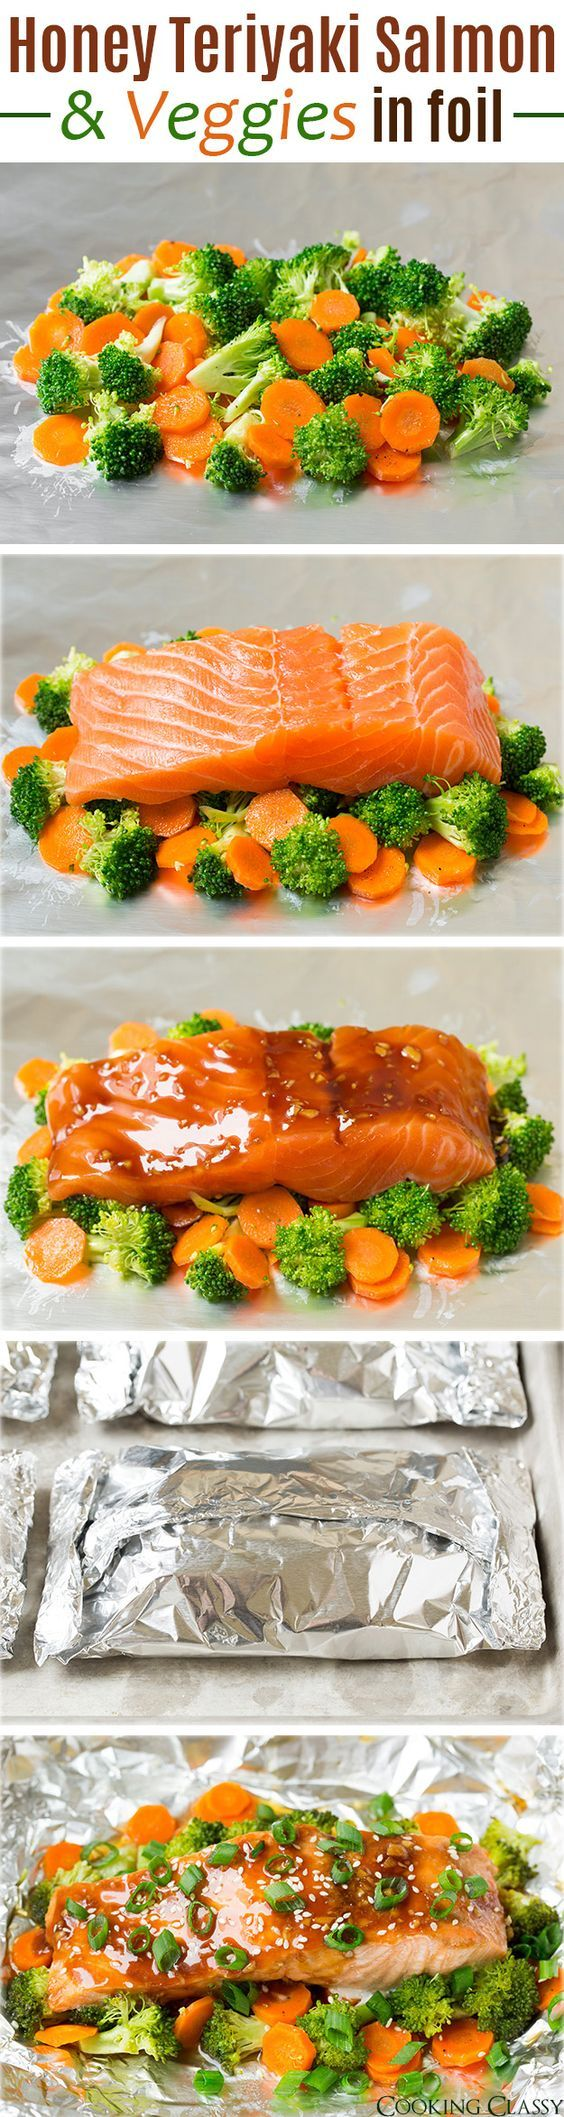 Honey Teriyaki Salmon and Veggies in Foil - an easy dinner the whole family will love! You've got to try this salmon it's so delicious!